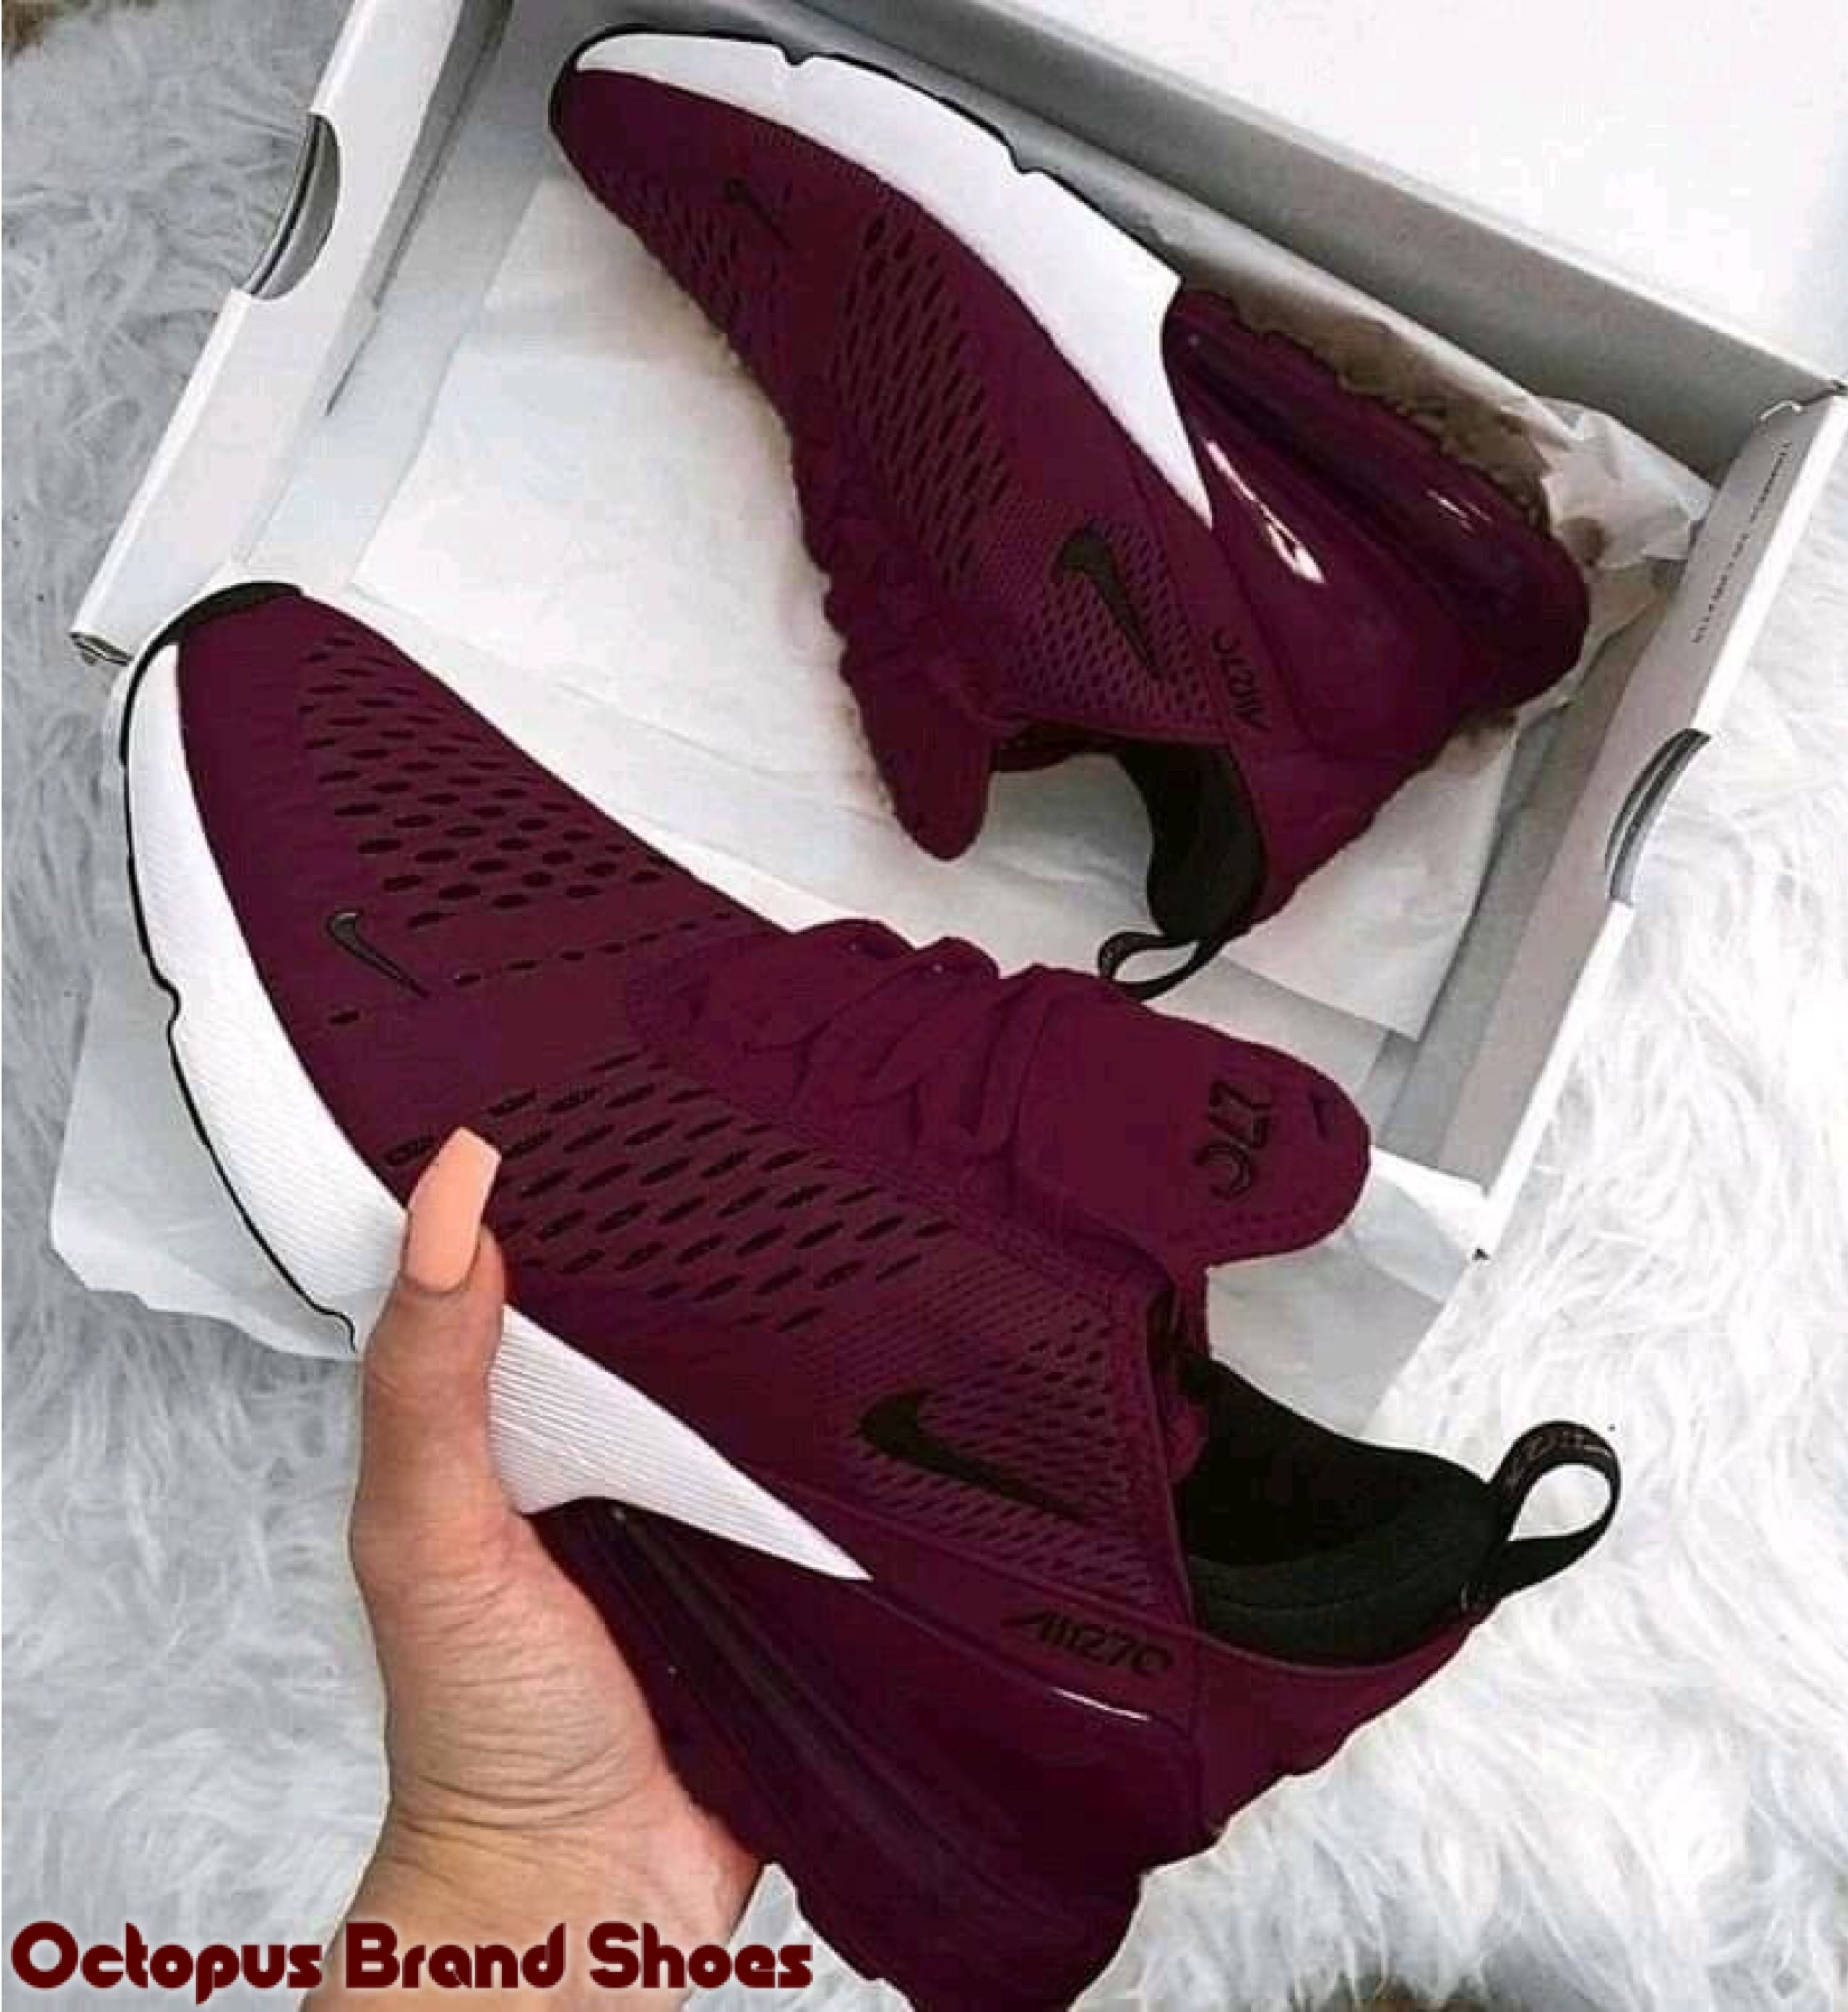 Pin by Papapaola on Shoes | Burgundy sneakers, Sneakers